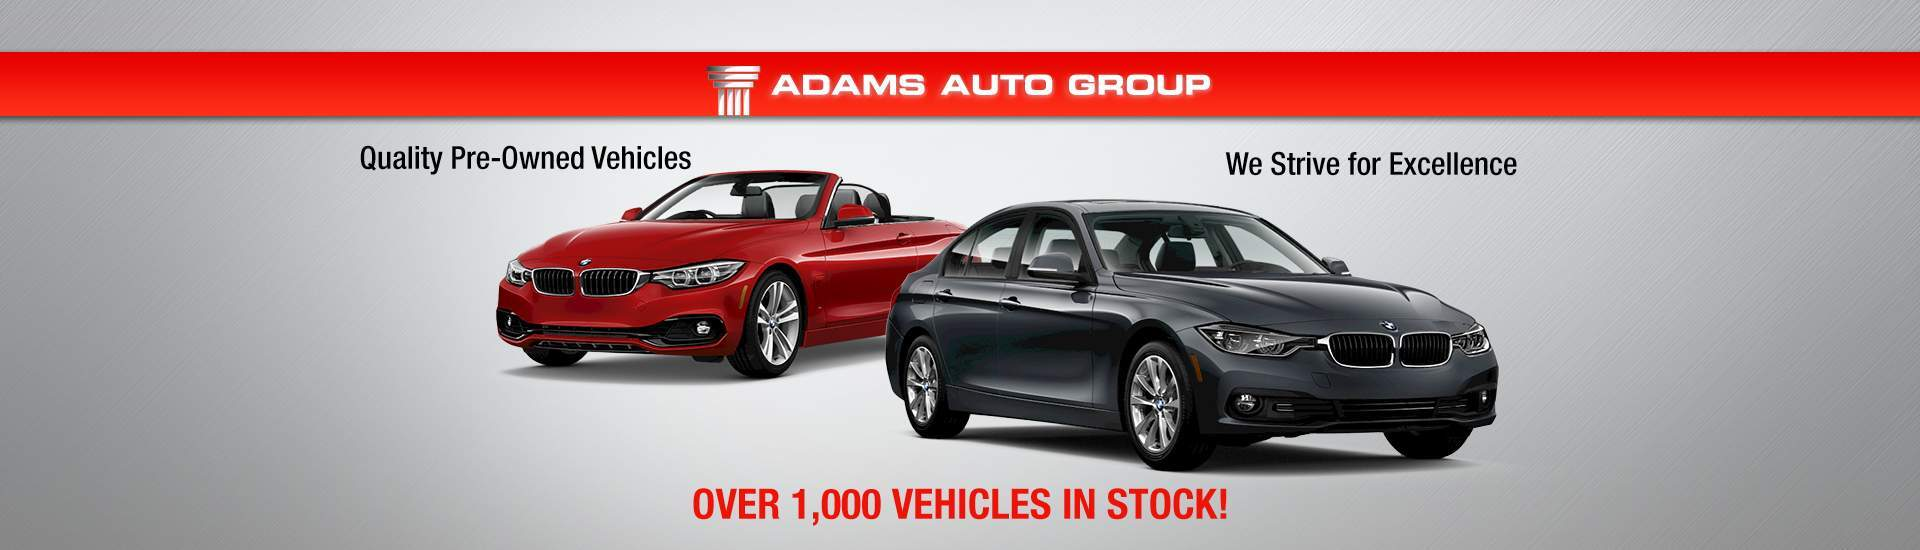 Used Car Dealership Charlotte NC | Adams Auto Group